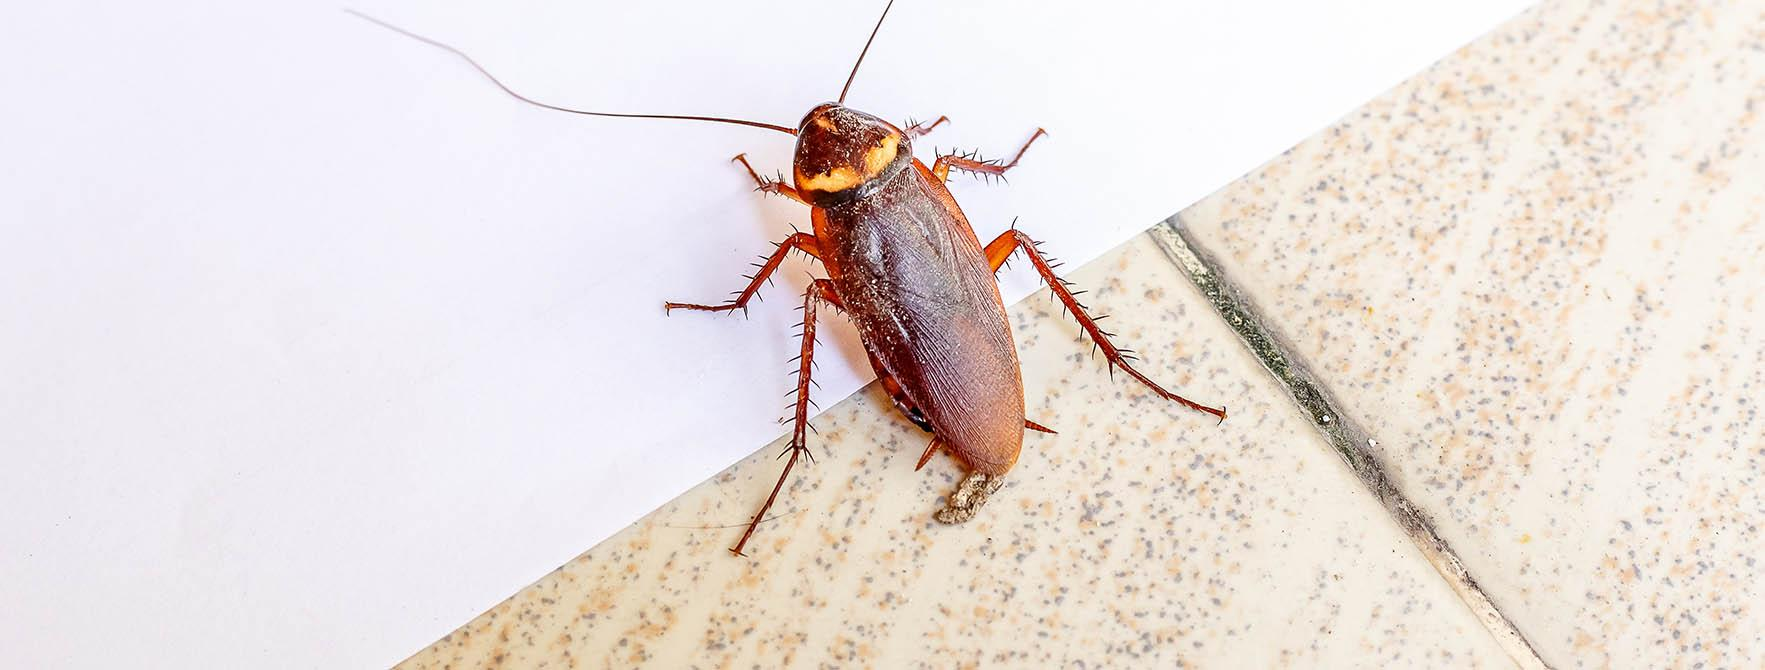 sb-lc-insect-header-cockroach